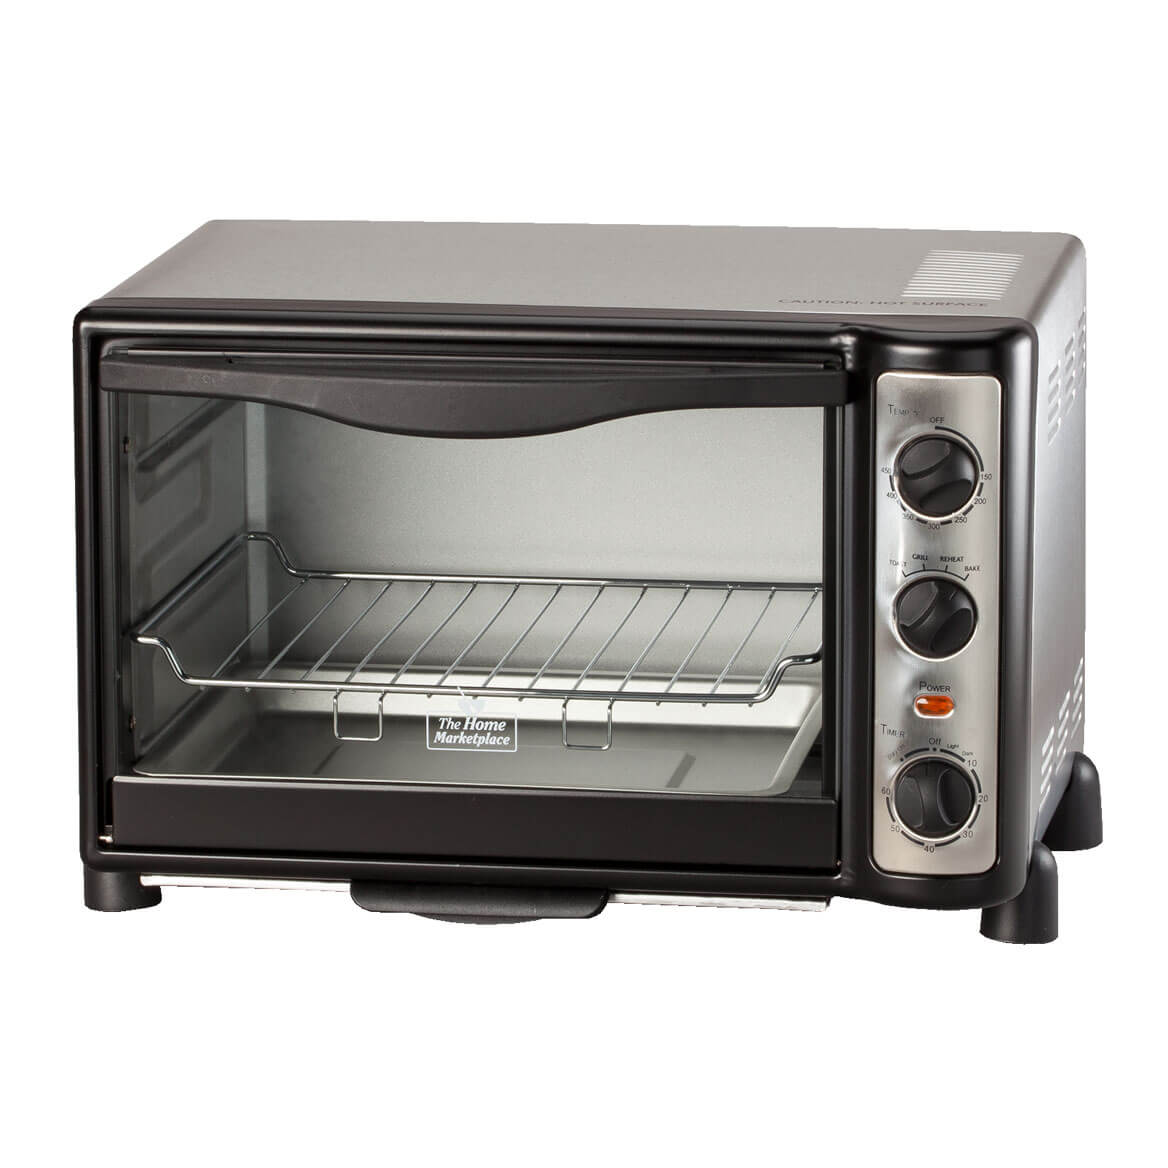 Top Loading Toaster ~ Toaster oven by the home marketplace